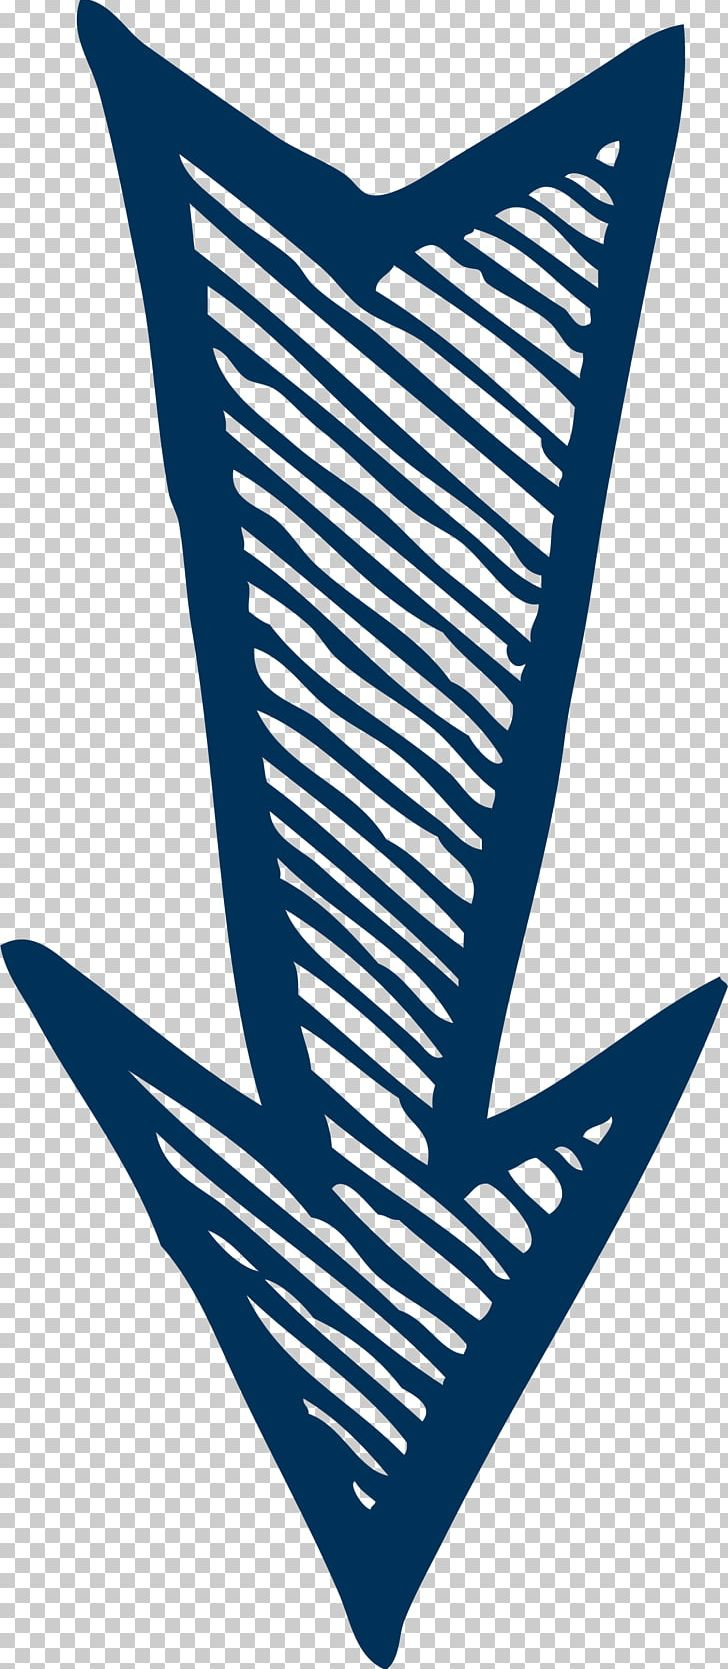 Taiwan Arrow Png Clipart 3d Arrows Angle Arrow Down Arrow Icon Arrows Free Png Download